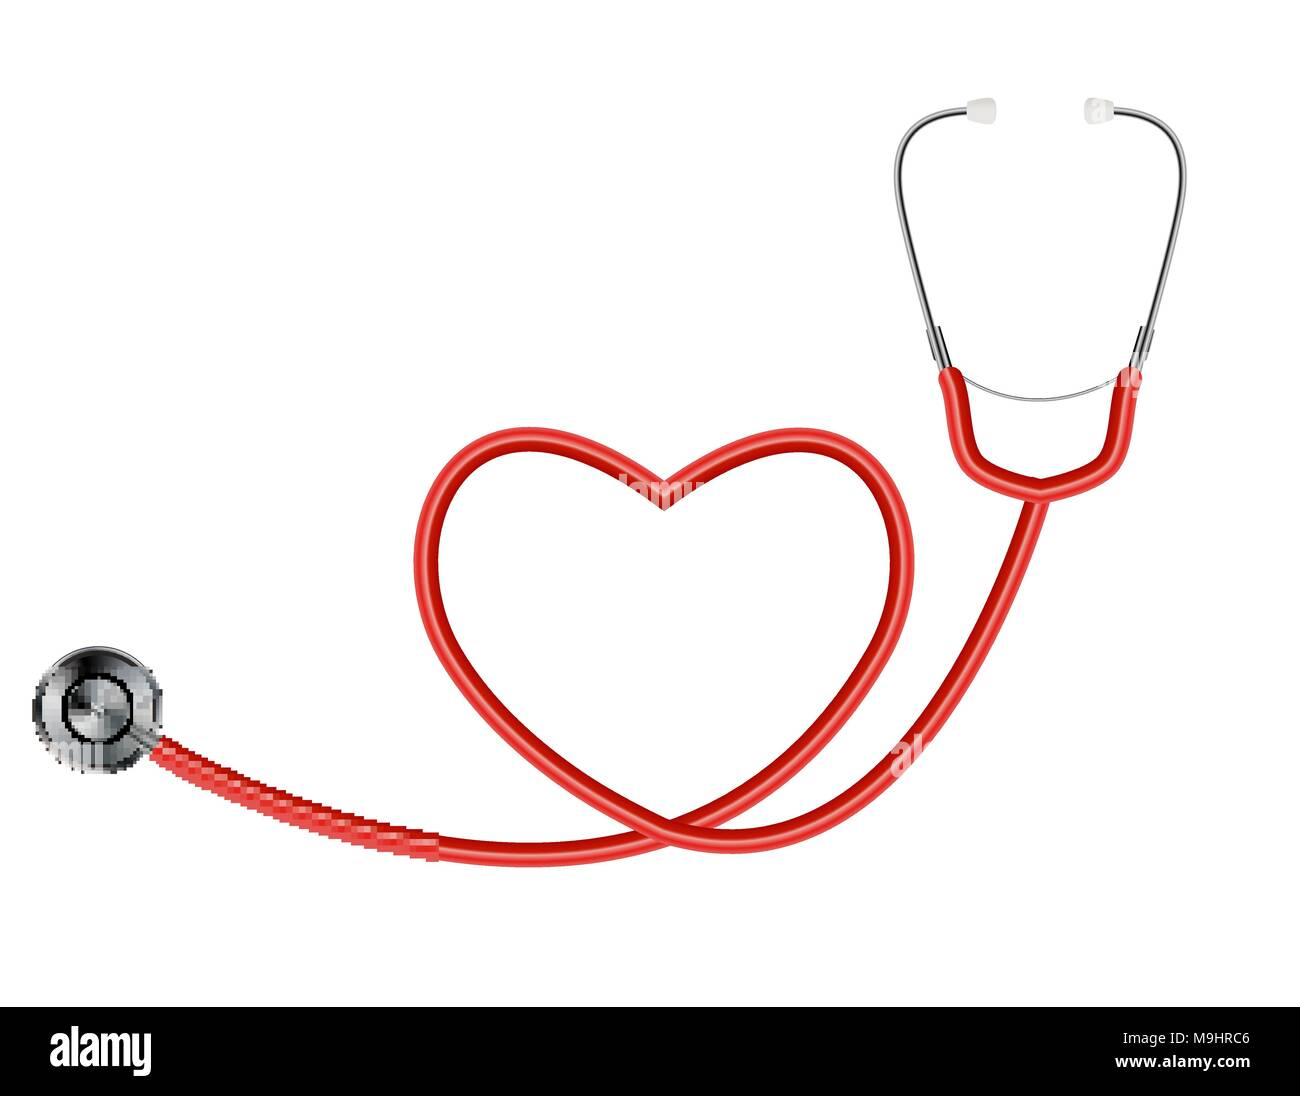 Stethoscope heart medical symbol vector stock photos stethoscope medical tool stethoscope isolated on white background with heart symbol vector illustration stock image biocorpaavc Choice Image